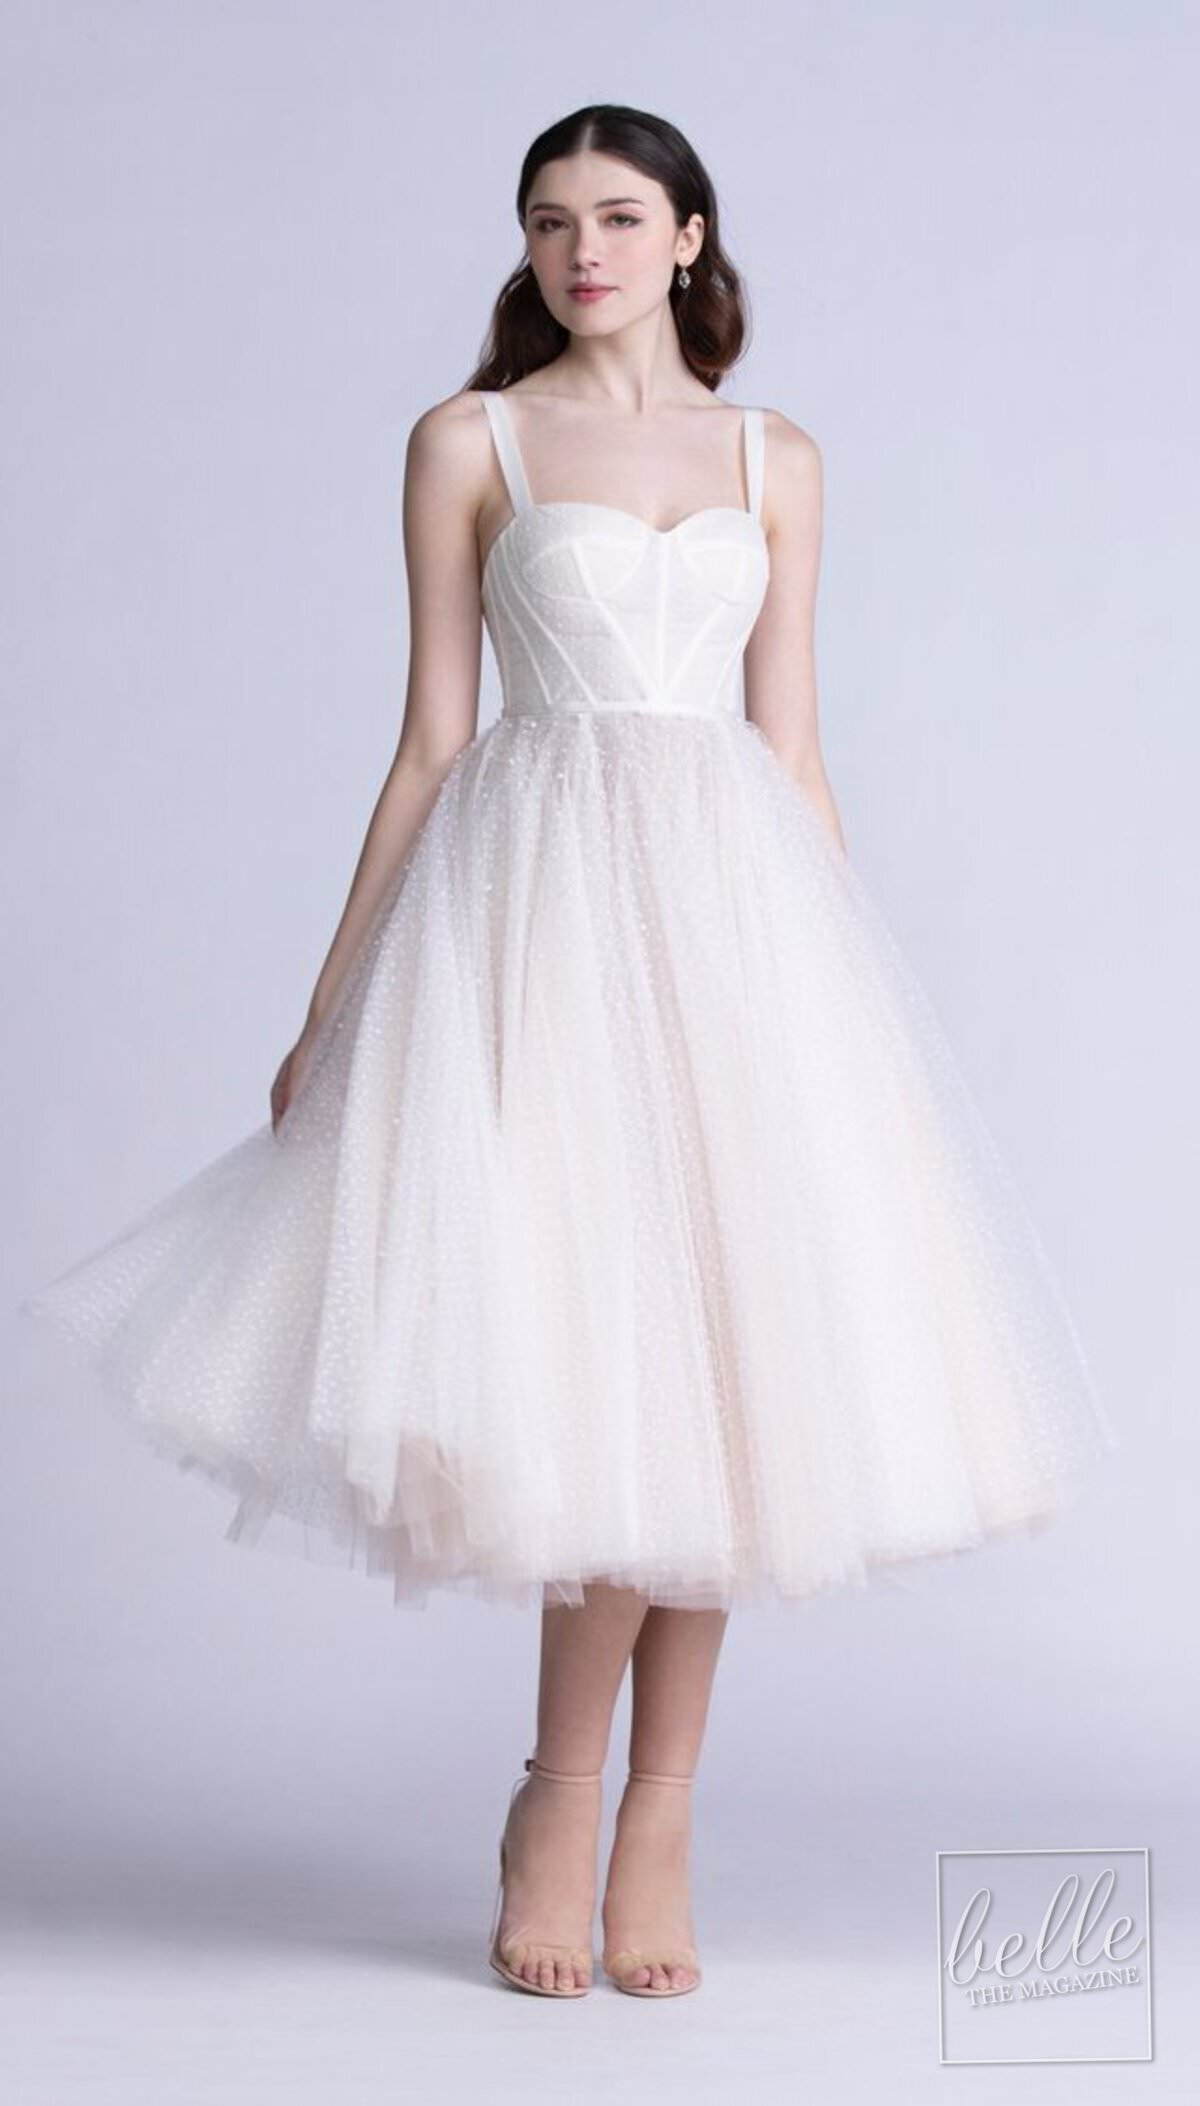 Wedding dress trends 2021 - Mini dresses and separates - Bywatters - 31816 Moran